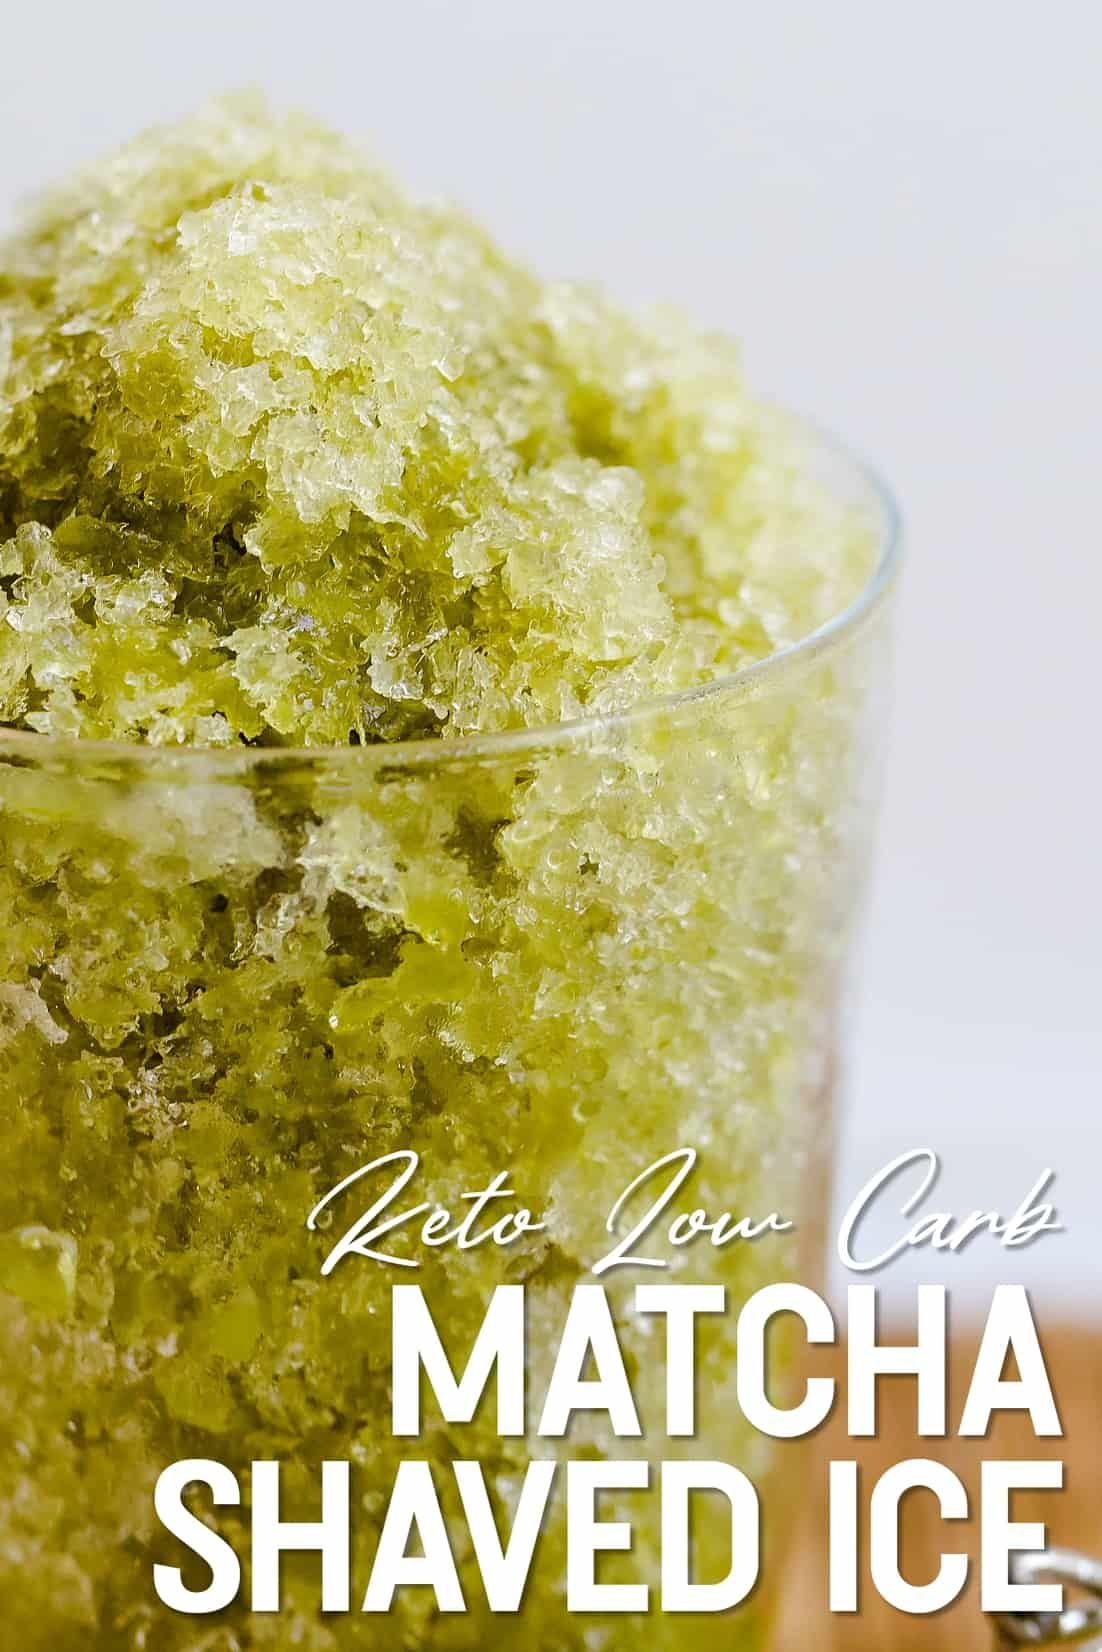 Keto Low Carb Matcha Shaved Ice